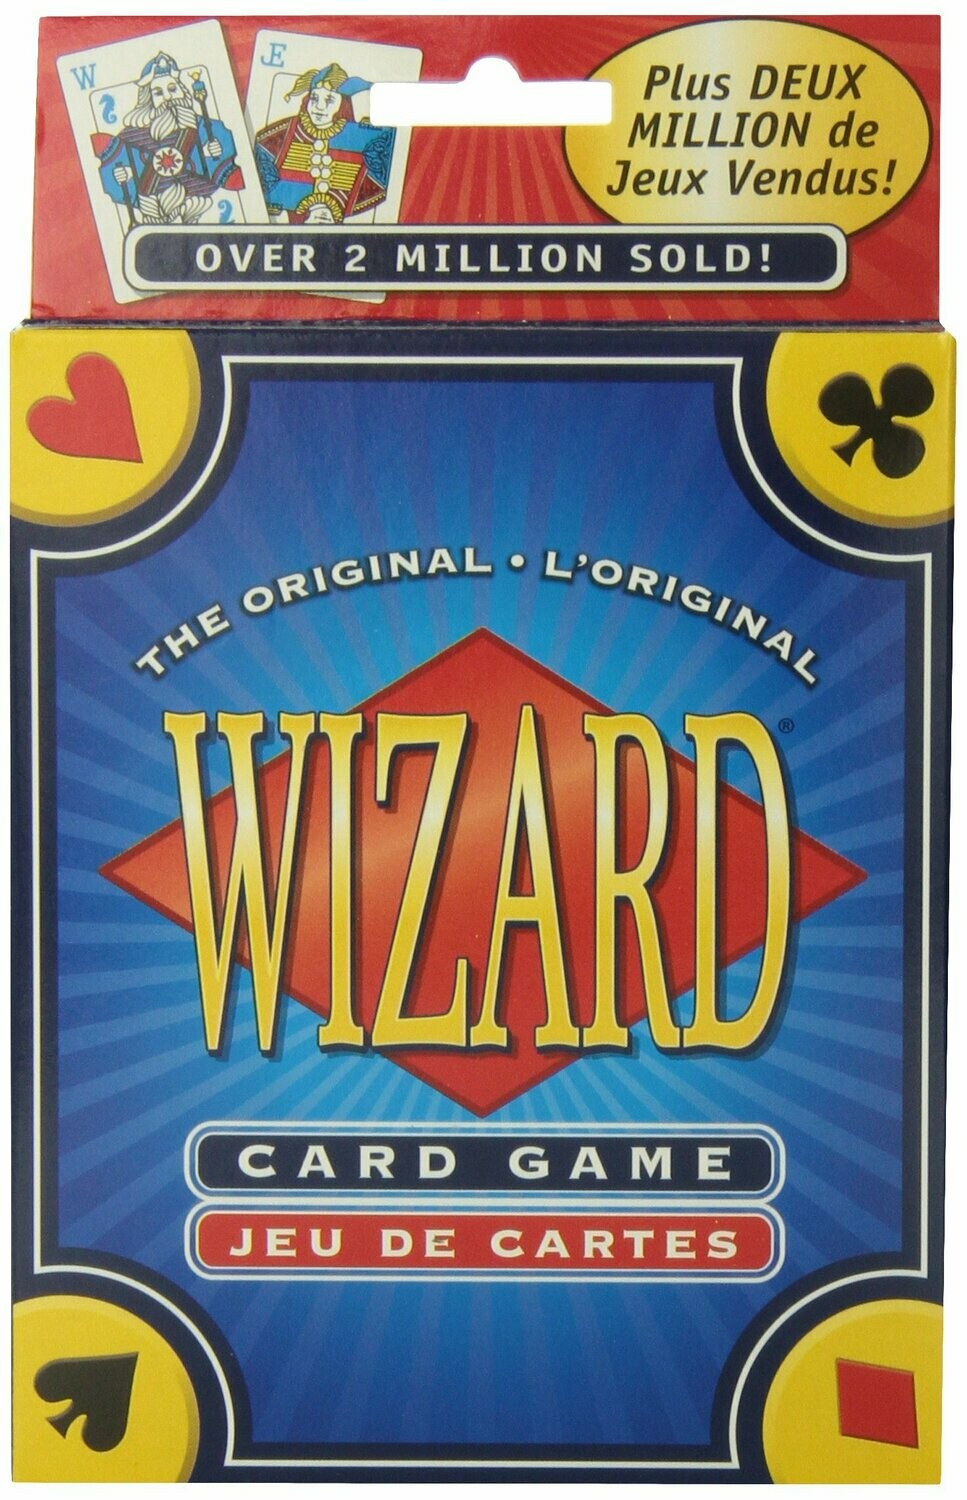 Wizard Card Game, 3- 6 players - Ages 10 and up